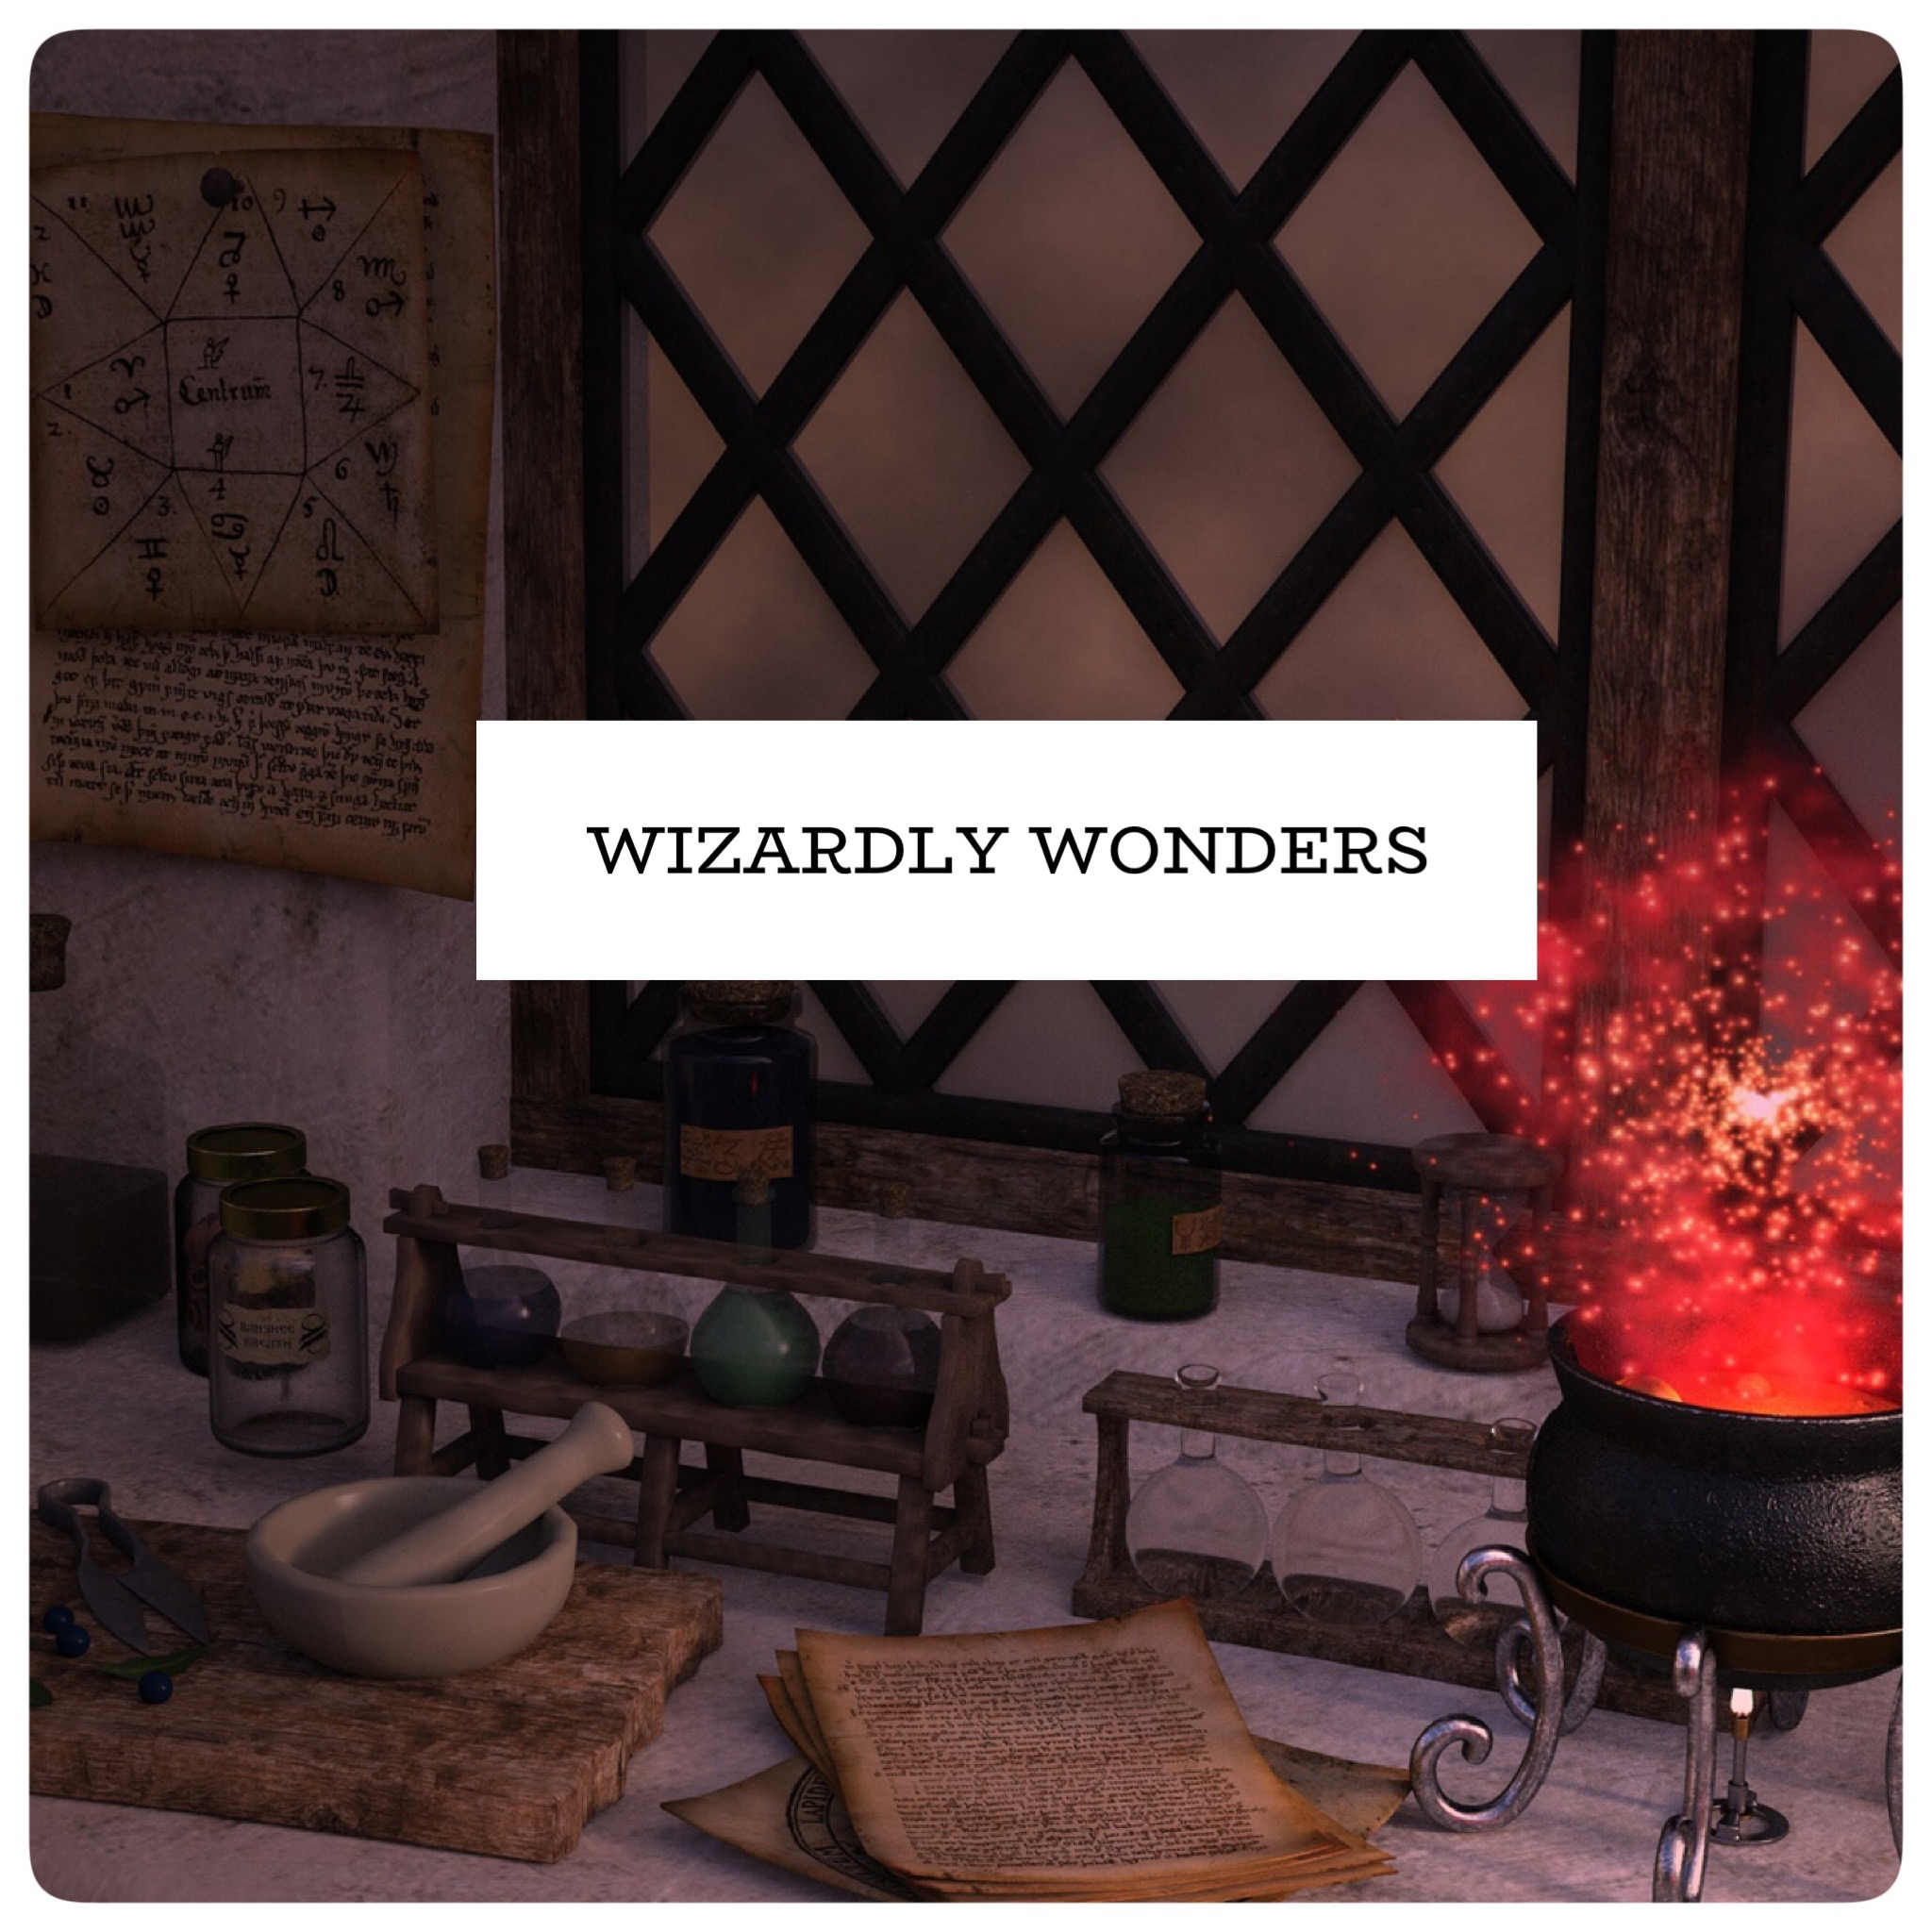 Welcome to our Wizardly Wonders summer camp.